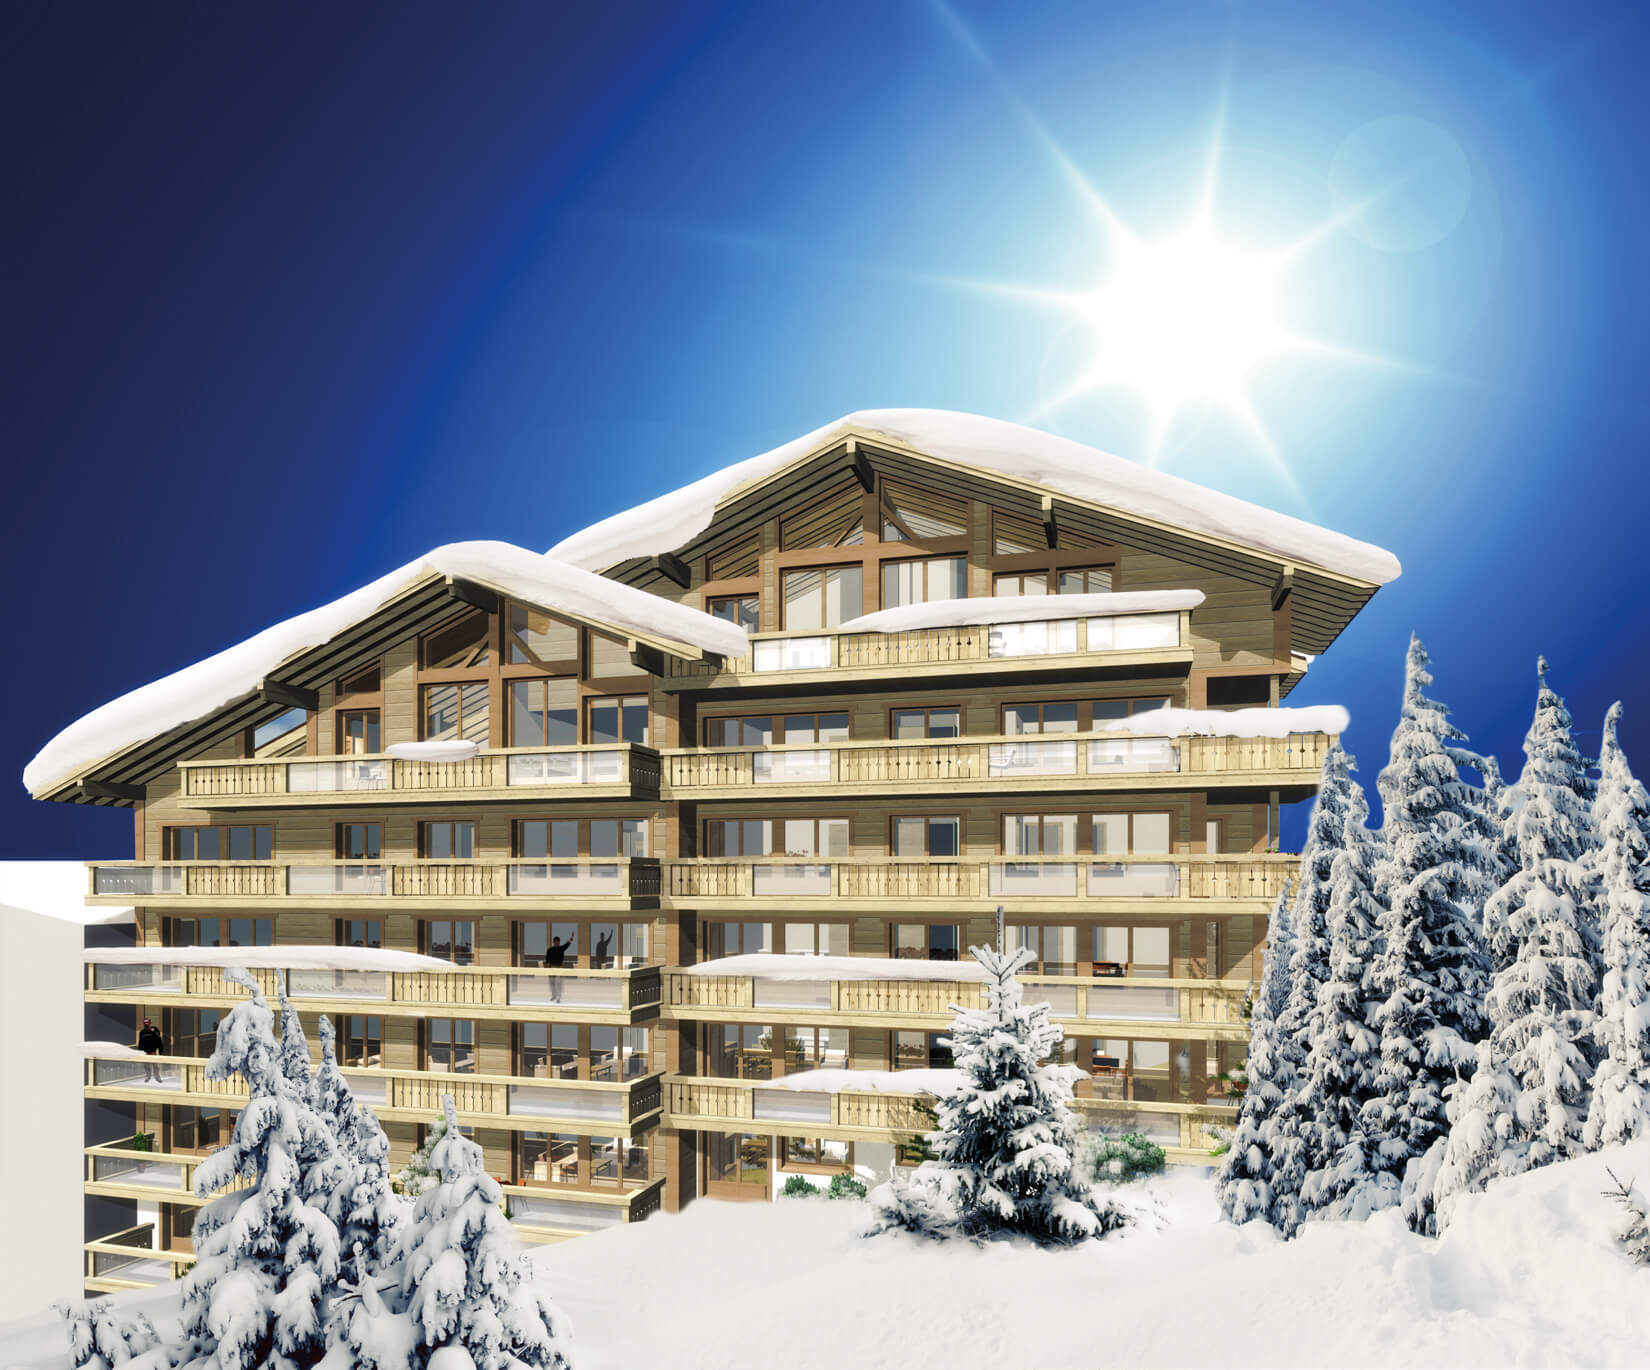 Les Terrasses de Nendaz – Luxe ski in – ski out appartementen in 4-vallees